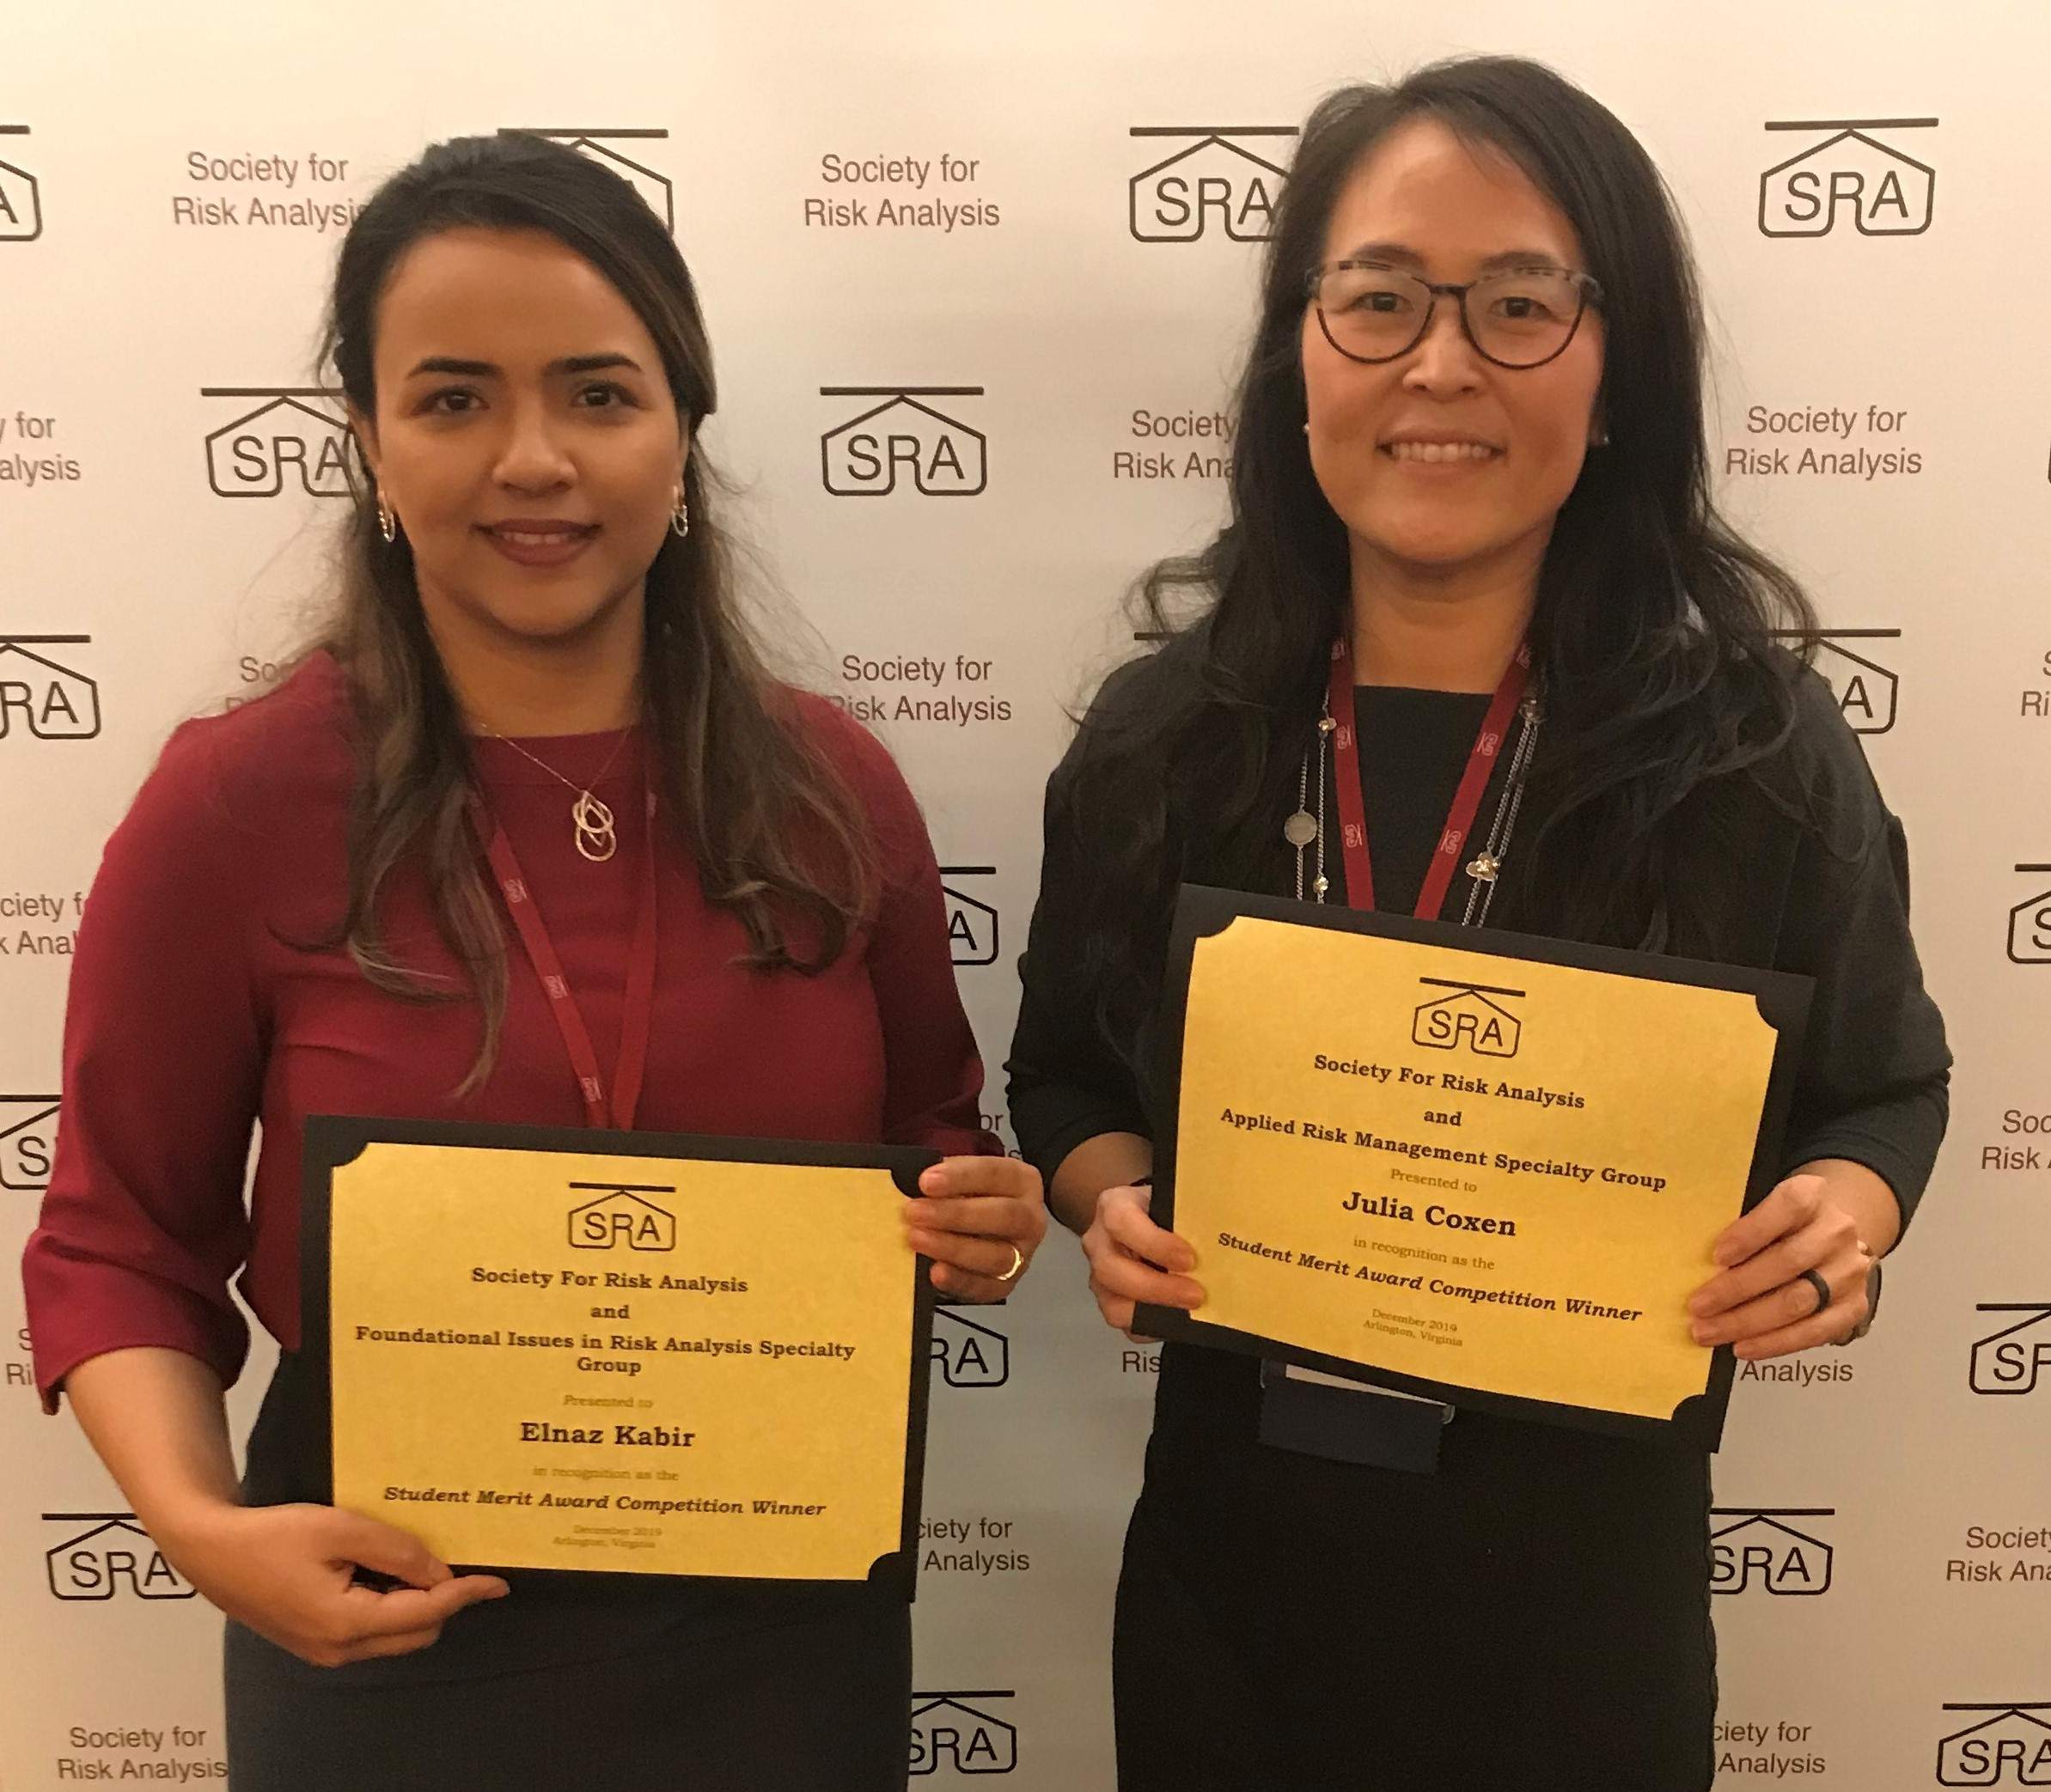 Photo of Elnaz Kabir and Julia Coxen holding their award certificates.